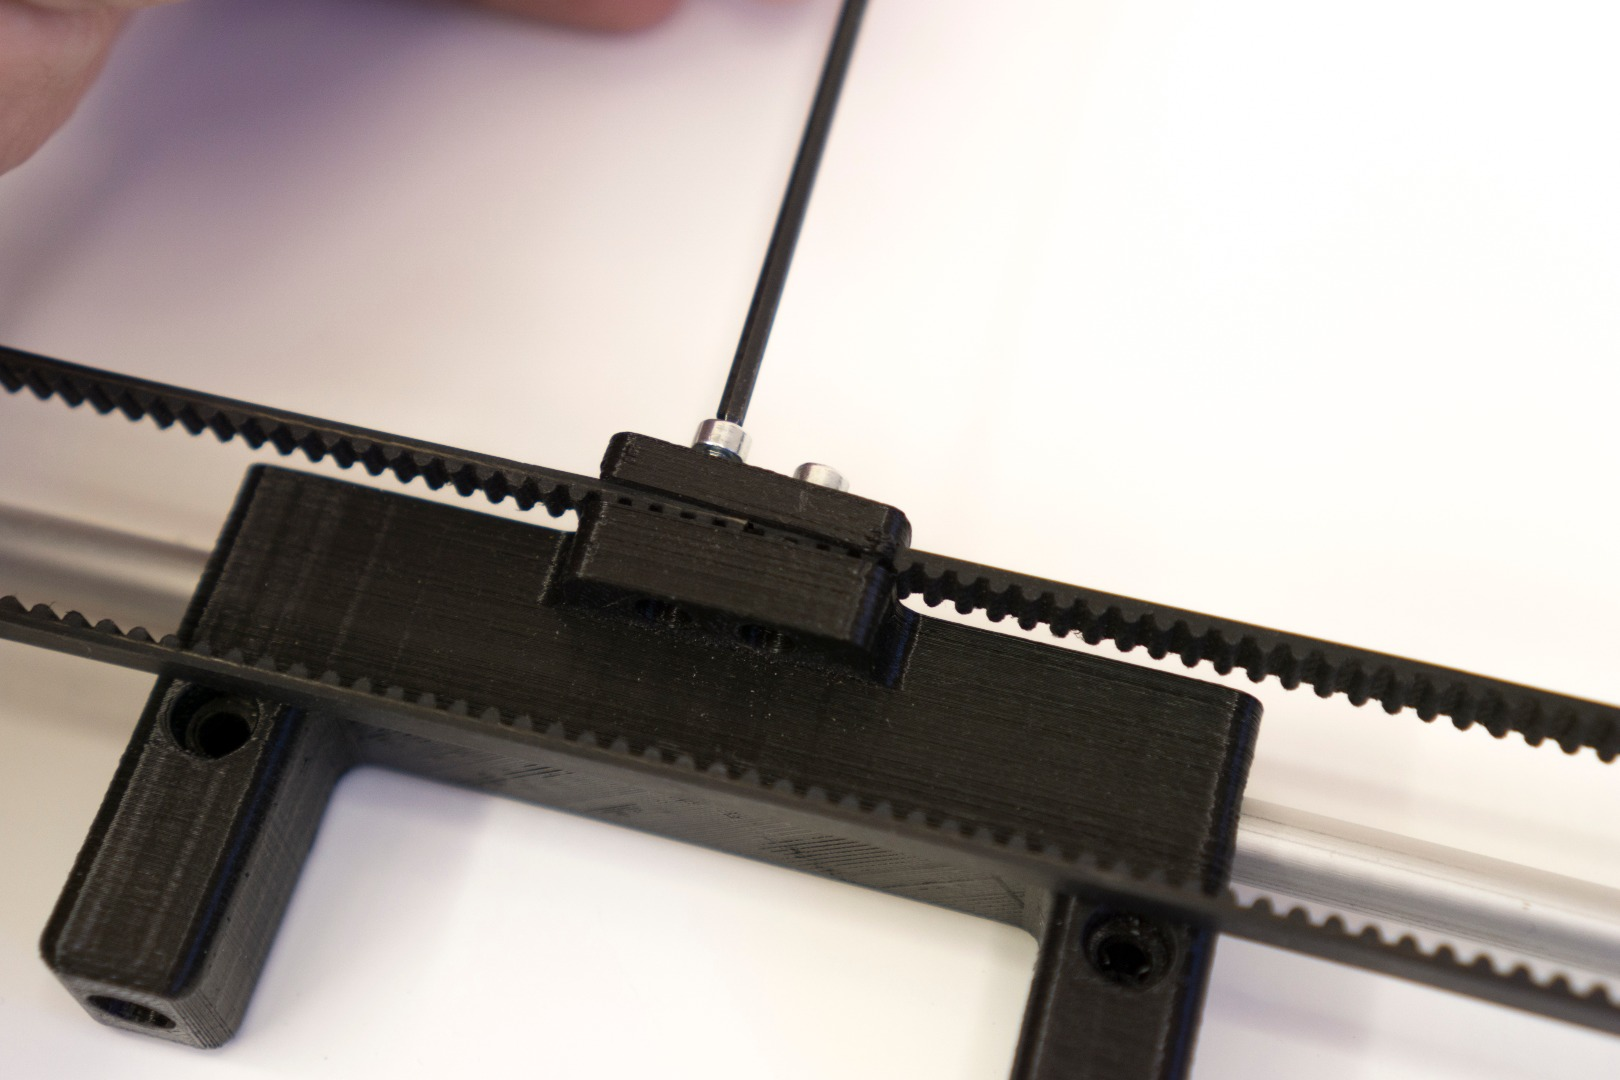 Picture of X-Axis Belts